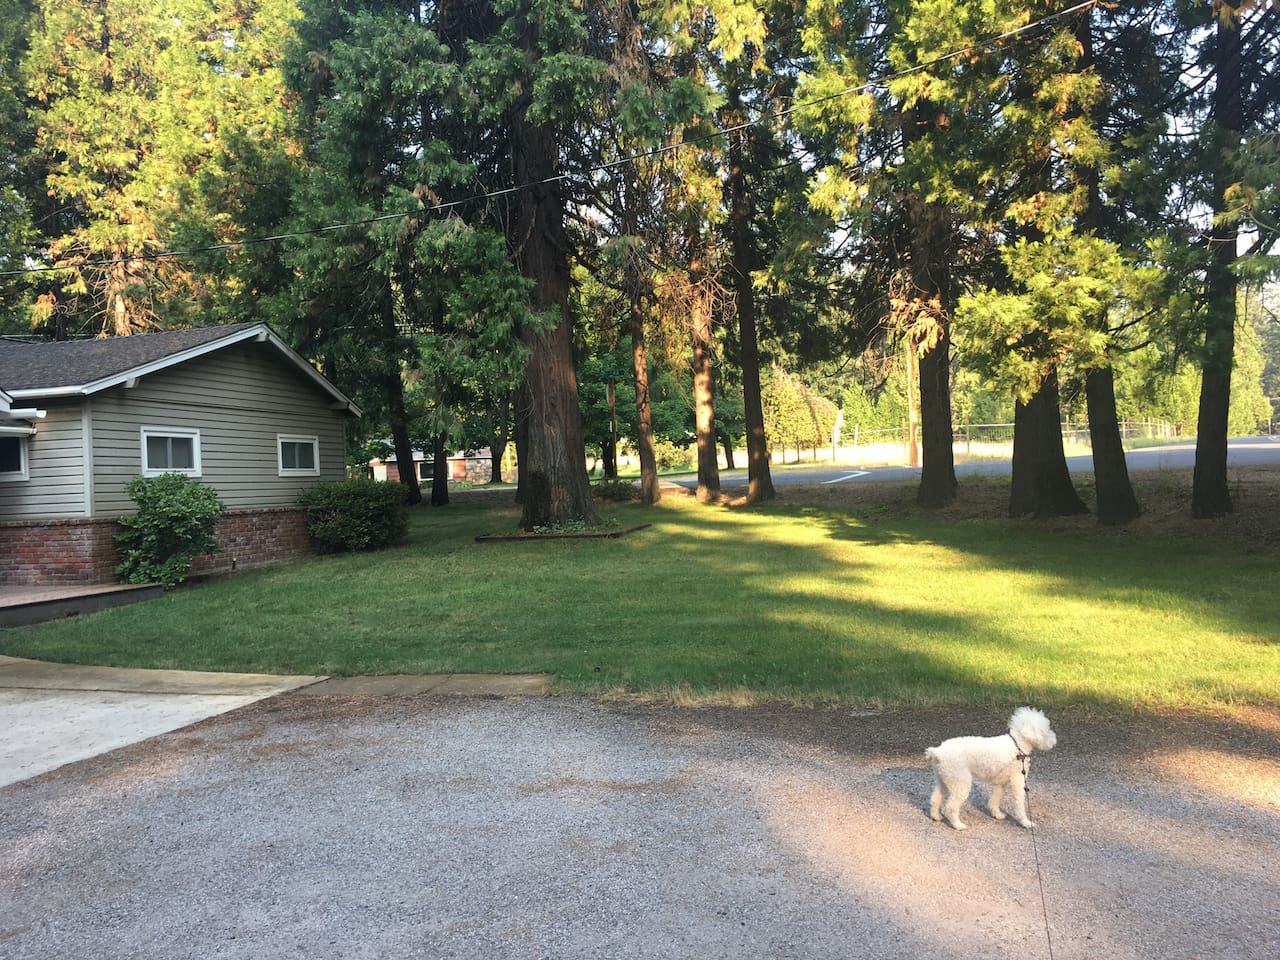 """Northwest side and lawn of """"Raven's Song"""" Air B&B with House mascot """"Bear"""".  Easy access double driveway and wide turnaround parking space."""